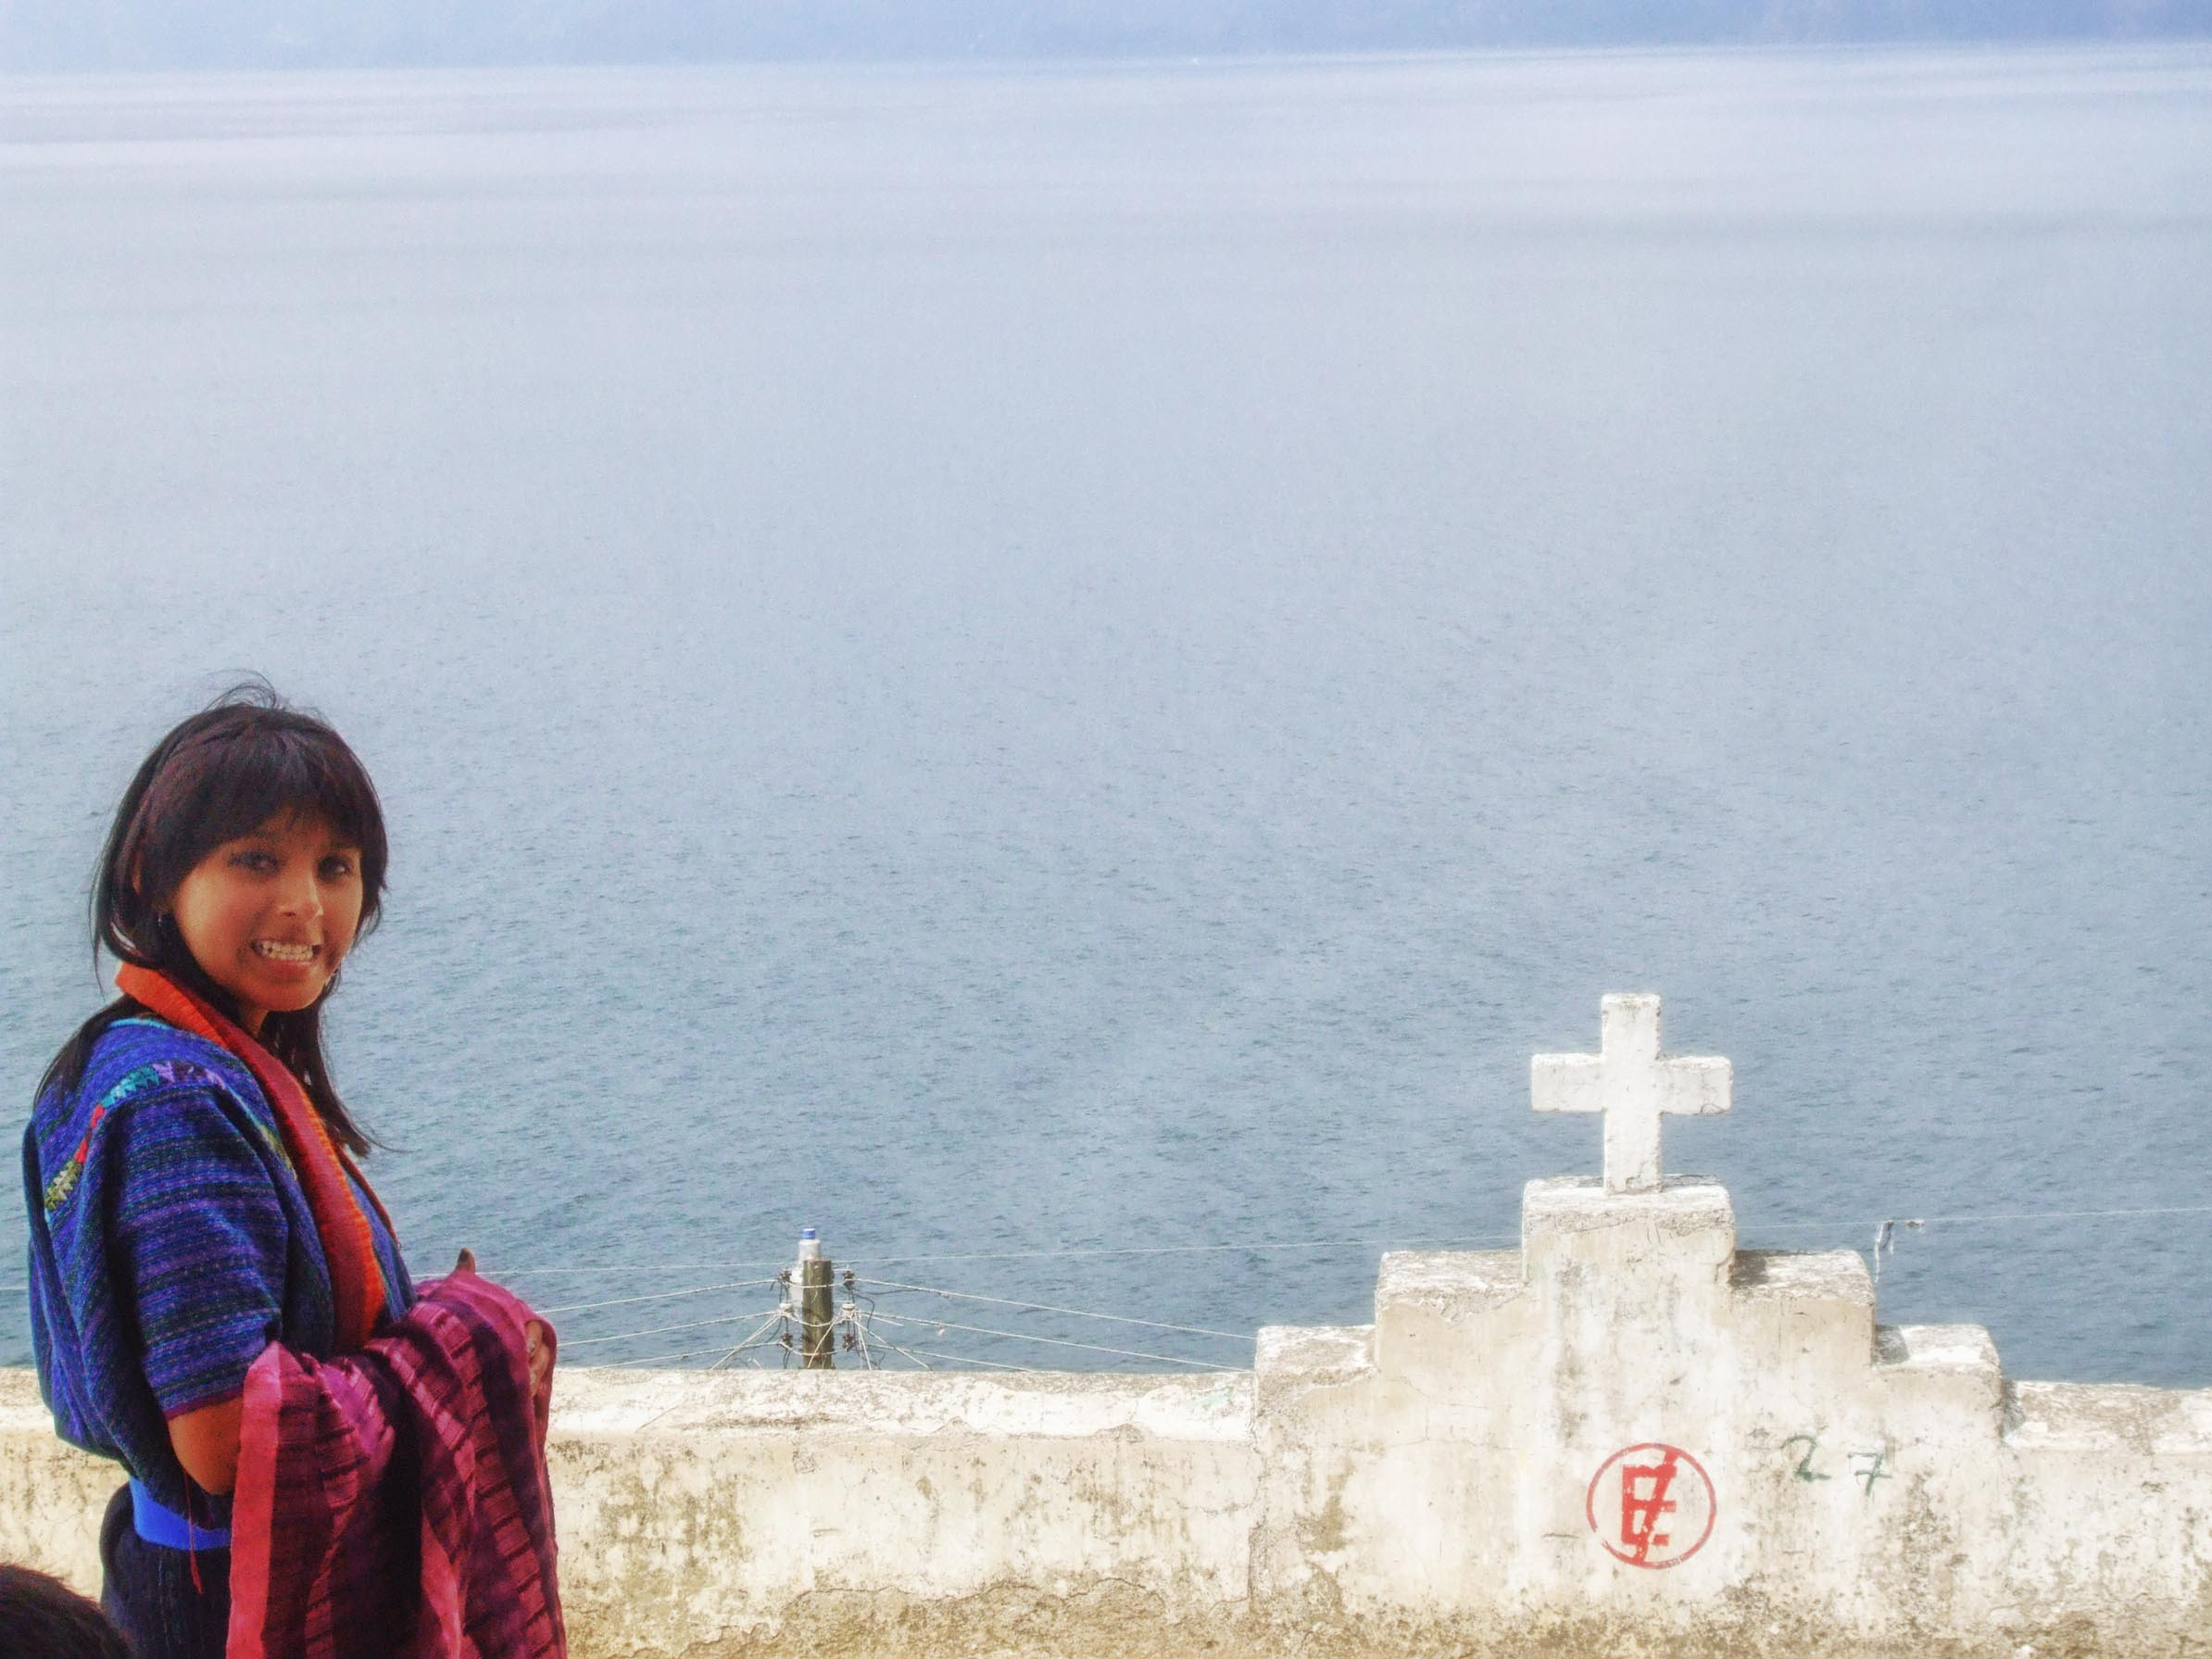 Girl in traditional blue clothing by stone wall with view of a lake